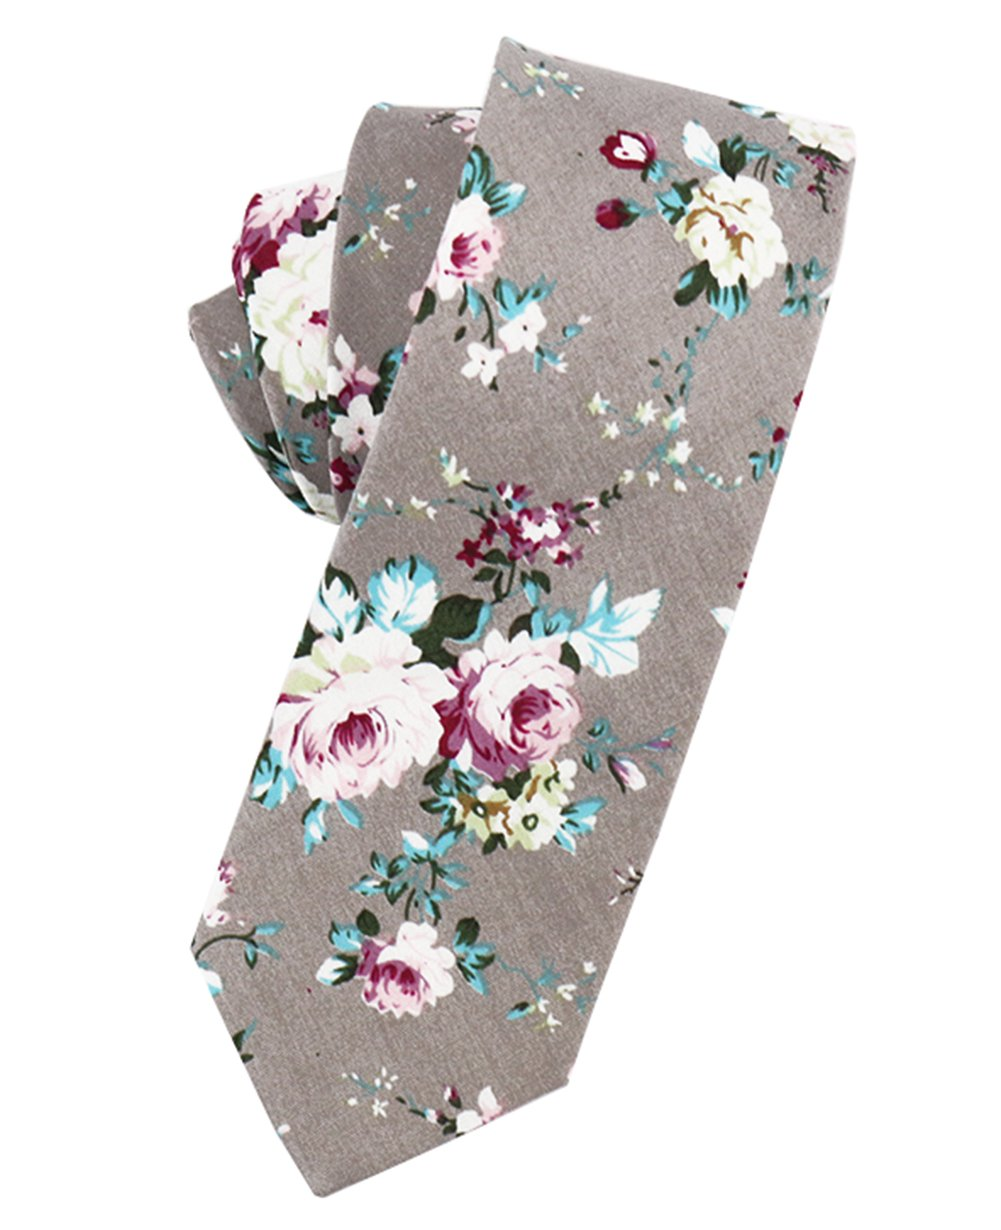 Cotton Ties for Men Neckties Set Floral Tie Skinny Printed Necktie Mantieqingway